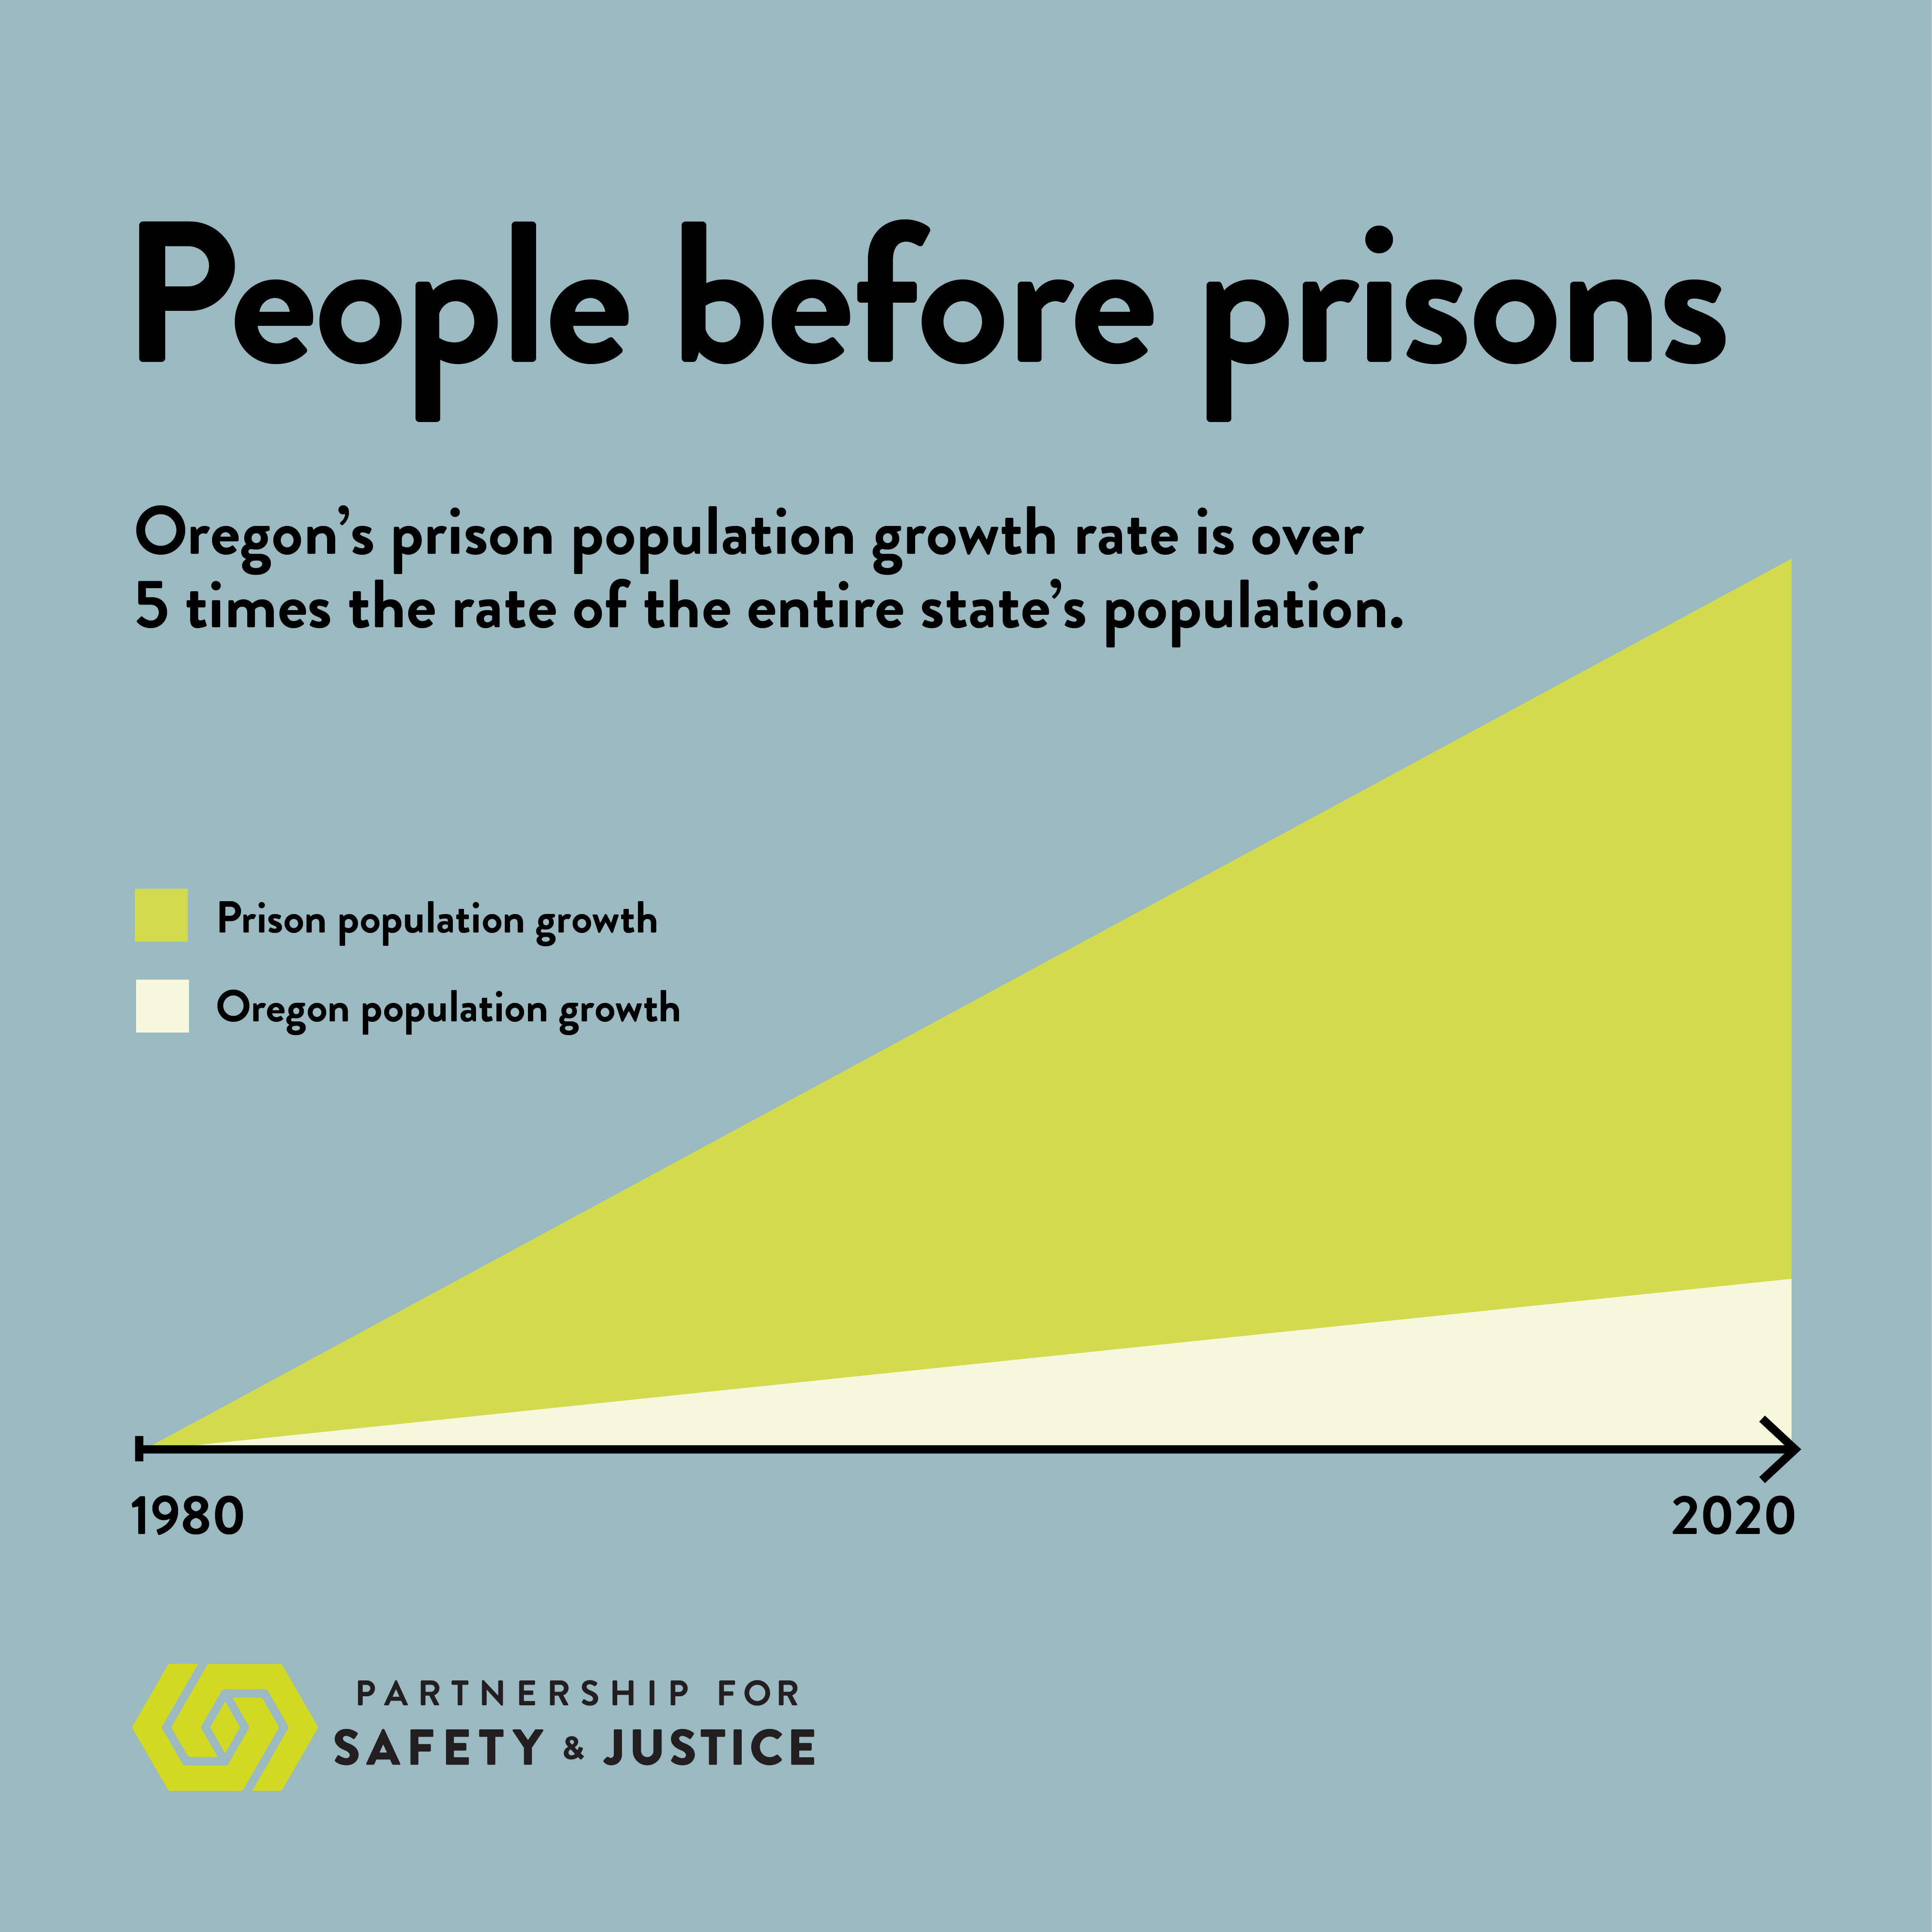 Graph showing the increase in incarceration in Oregon prisons over time.